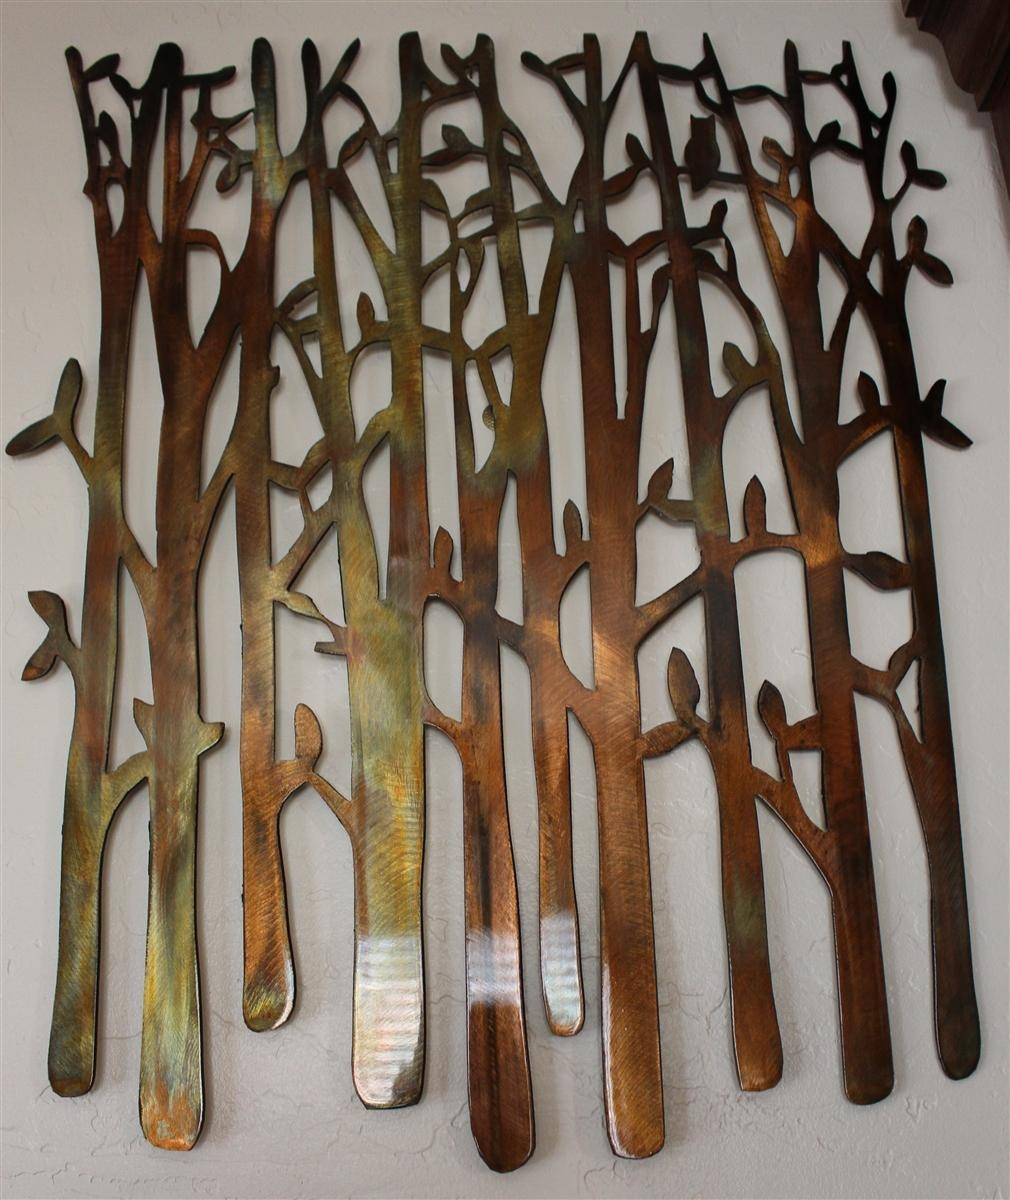 Birch Tree, Birch Tree Metal Art, Bamboo, Bird In The Trees, Bird With Regard To Metal Wall Art Trees And Branches (Image 5 of 20)